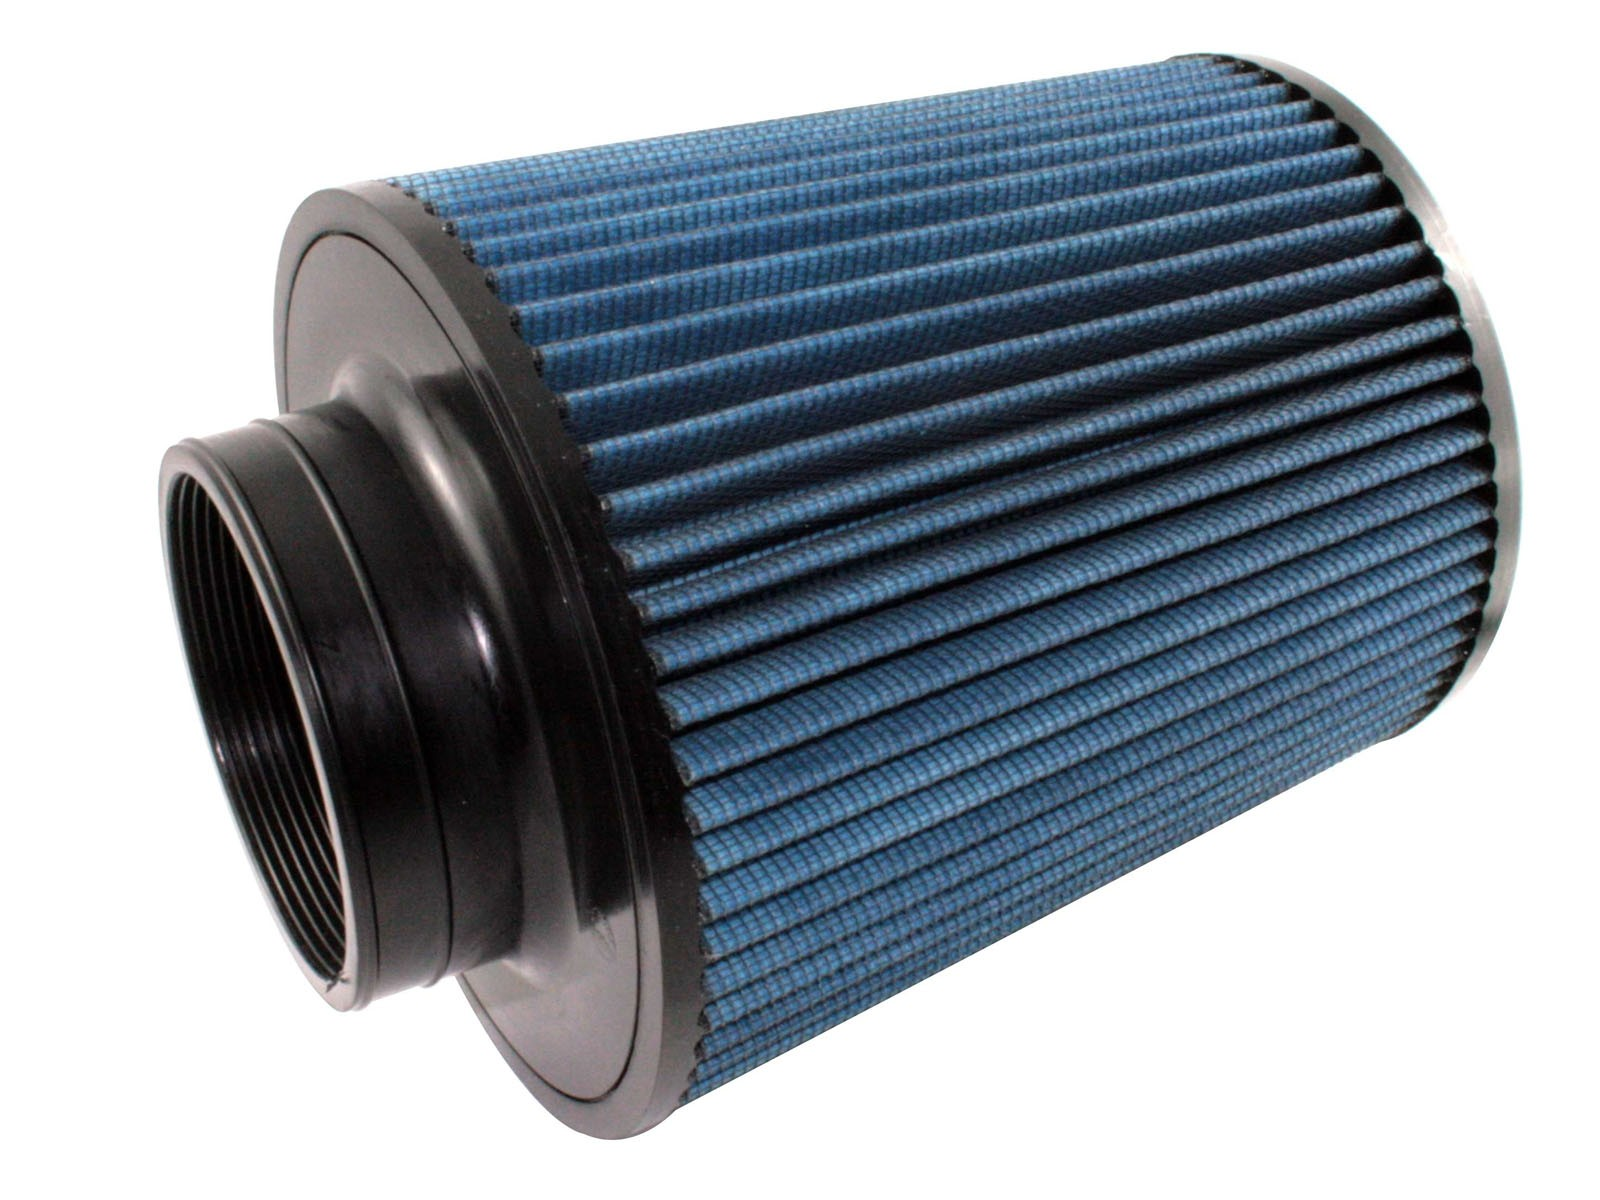 aFe POWER 24-91002 Magnum FLOW Pro 5R Air Filter